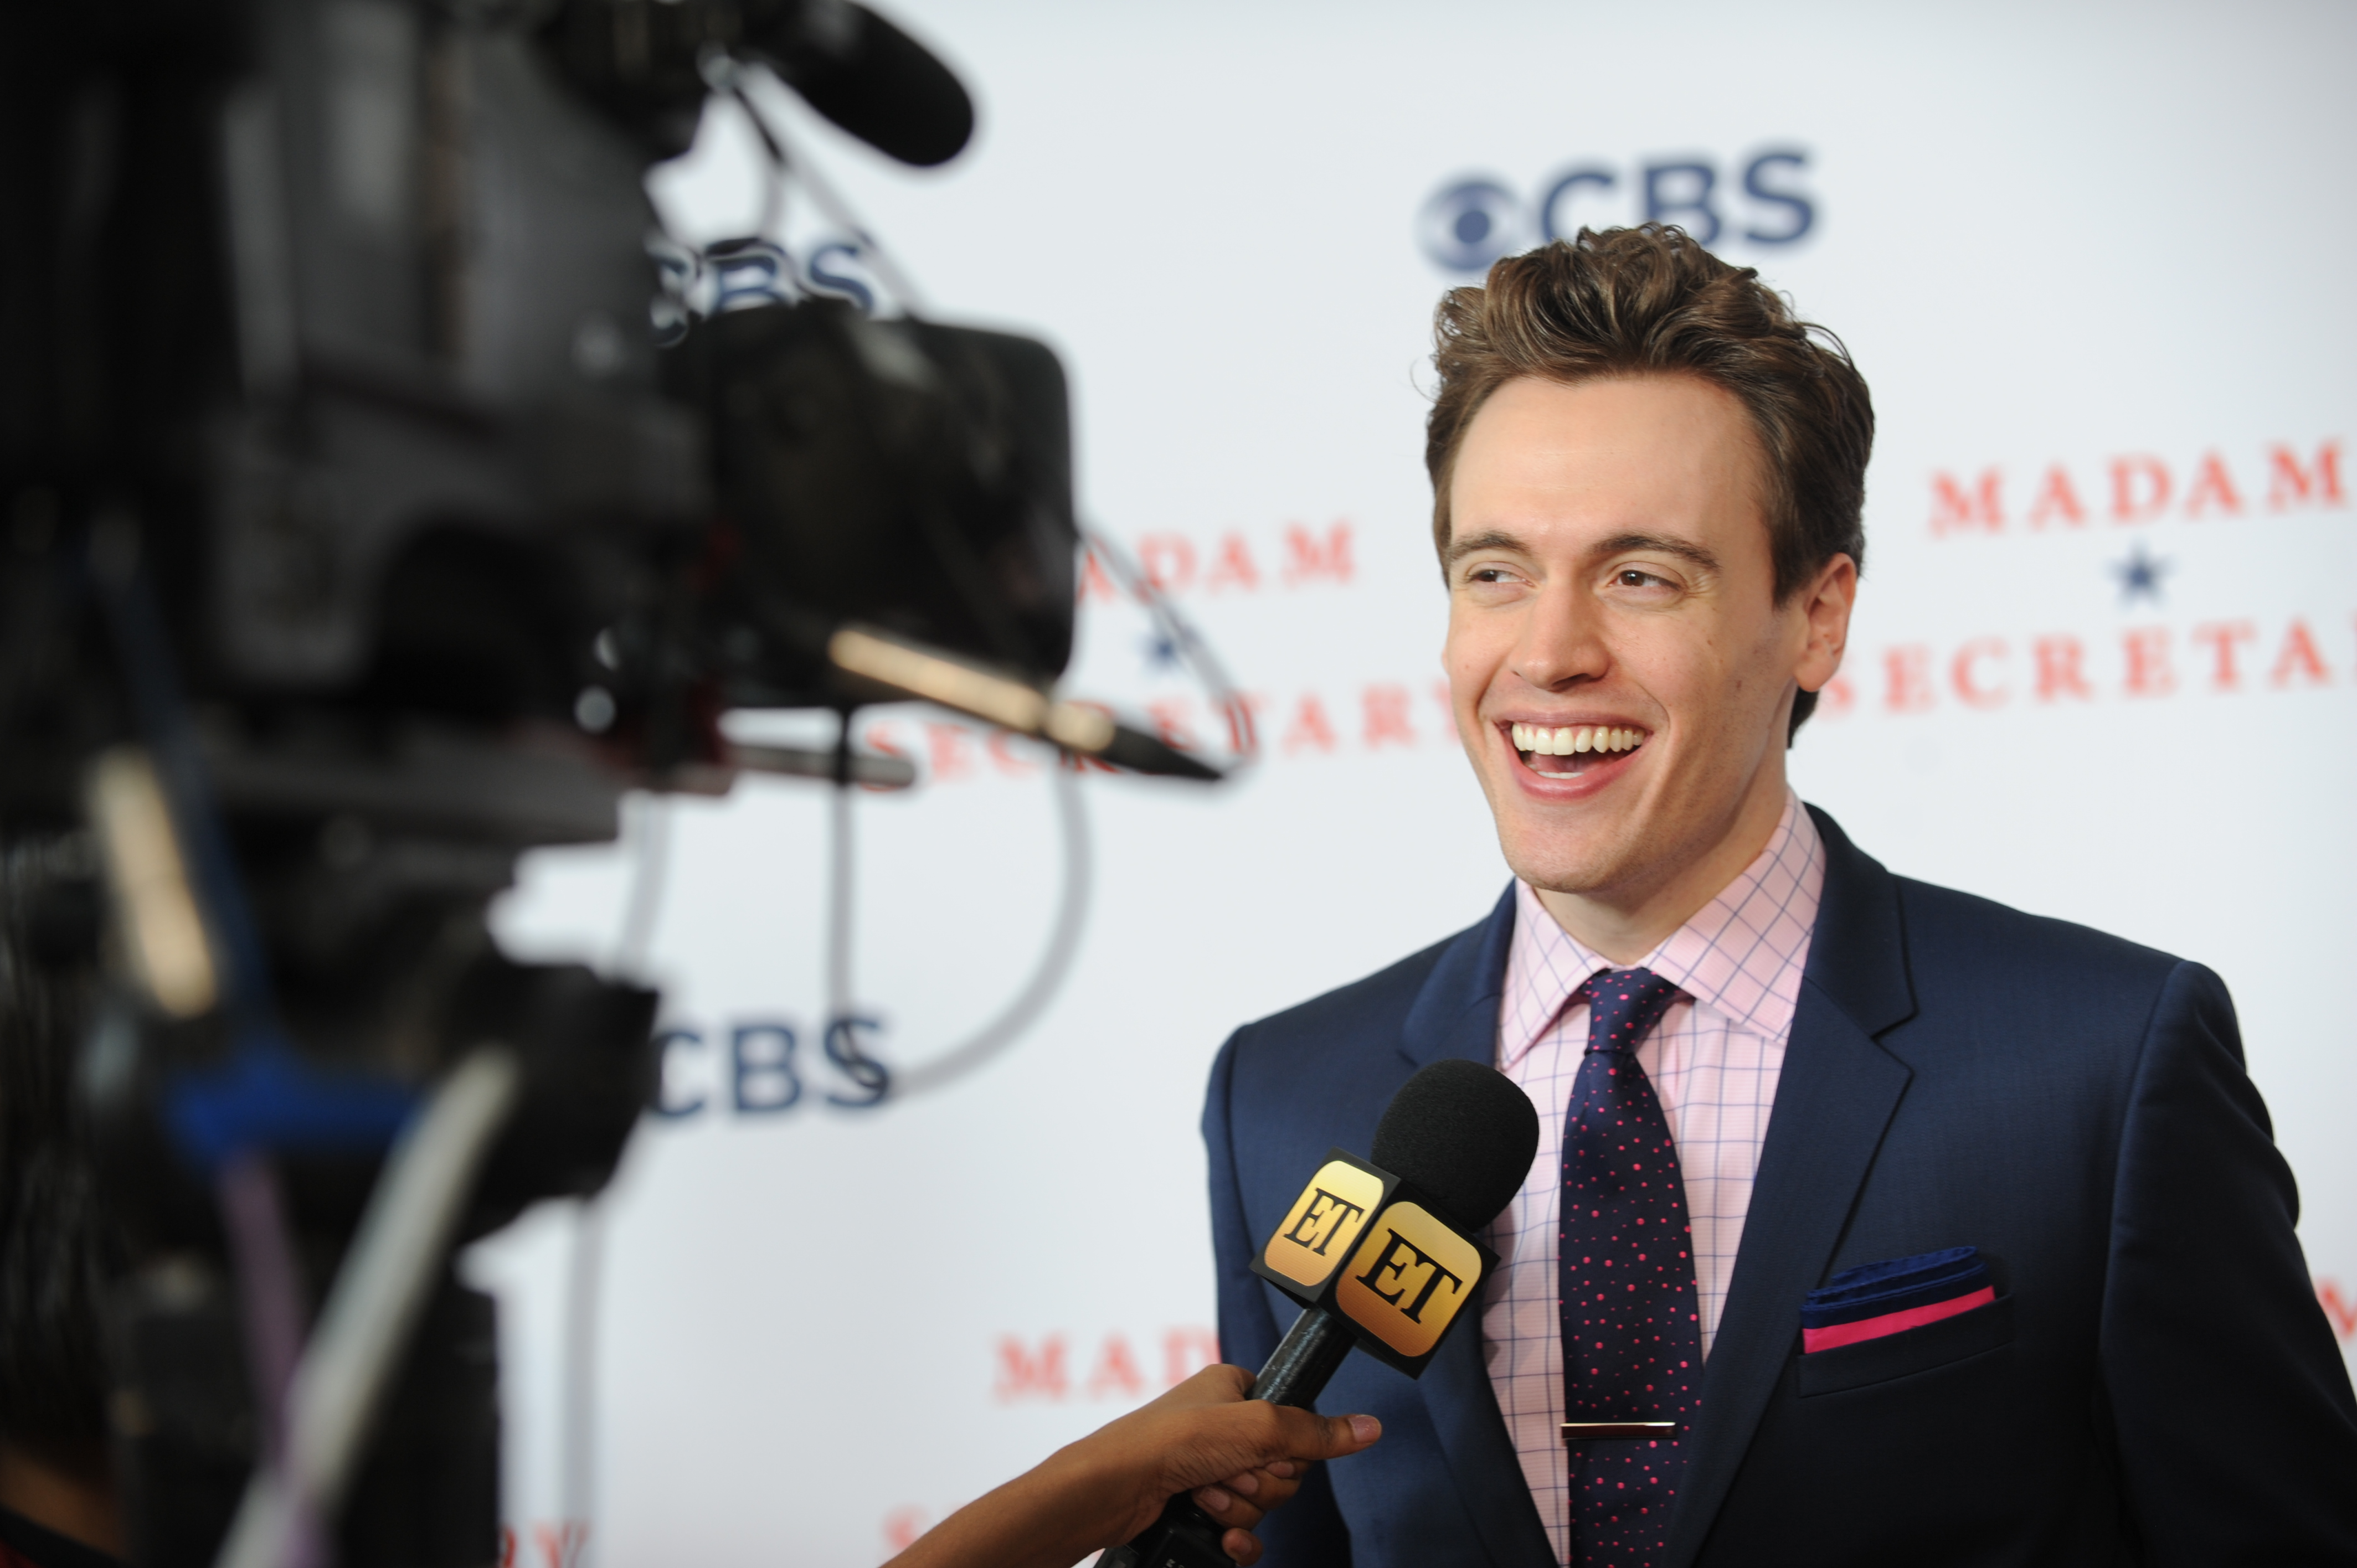 42. Erich Bergen has appeared in